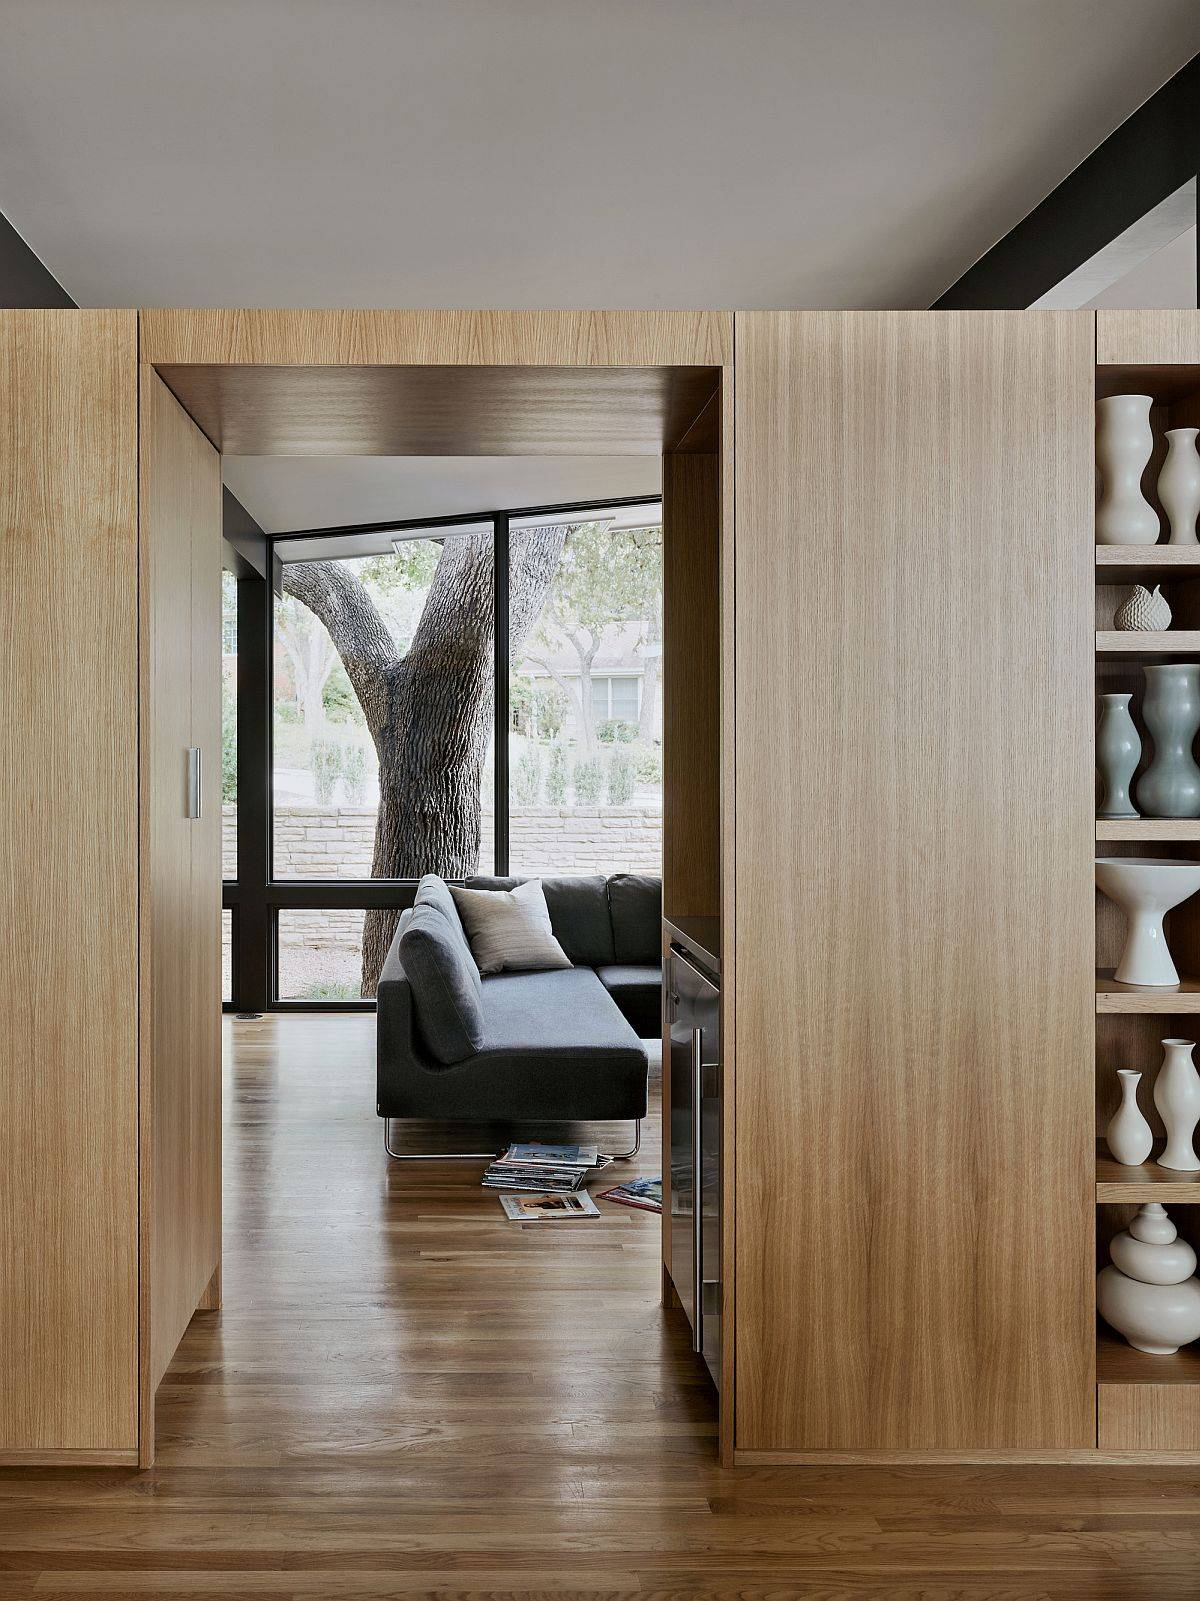 Art-collection-and-lovely-collection-of-vases-is-used-to-decorate-the-oak-cabinet-68915